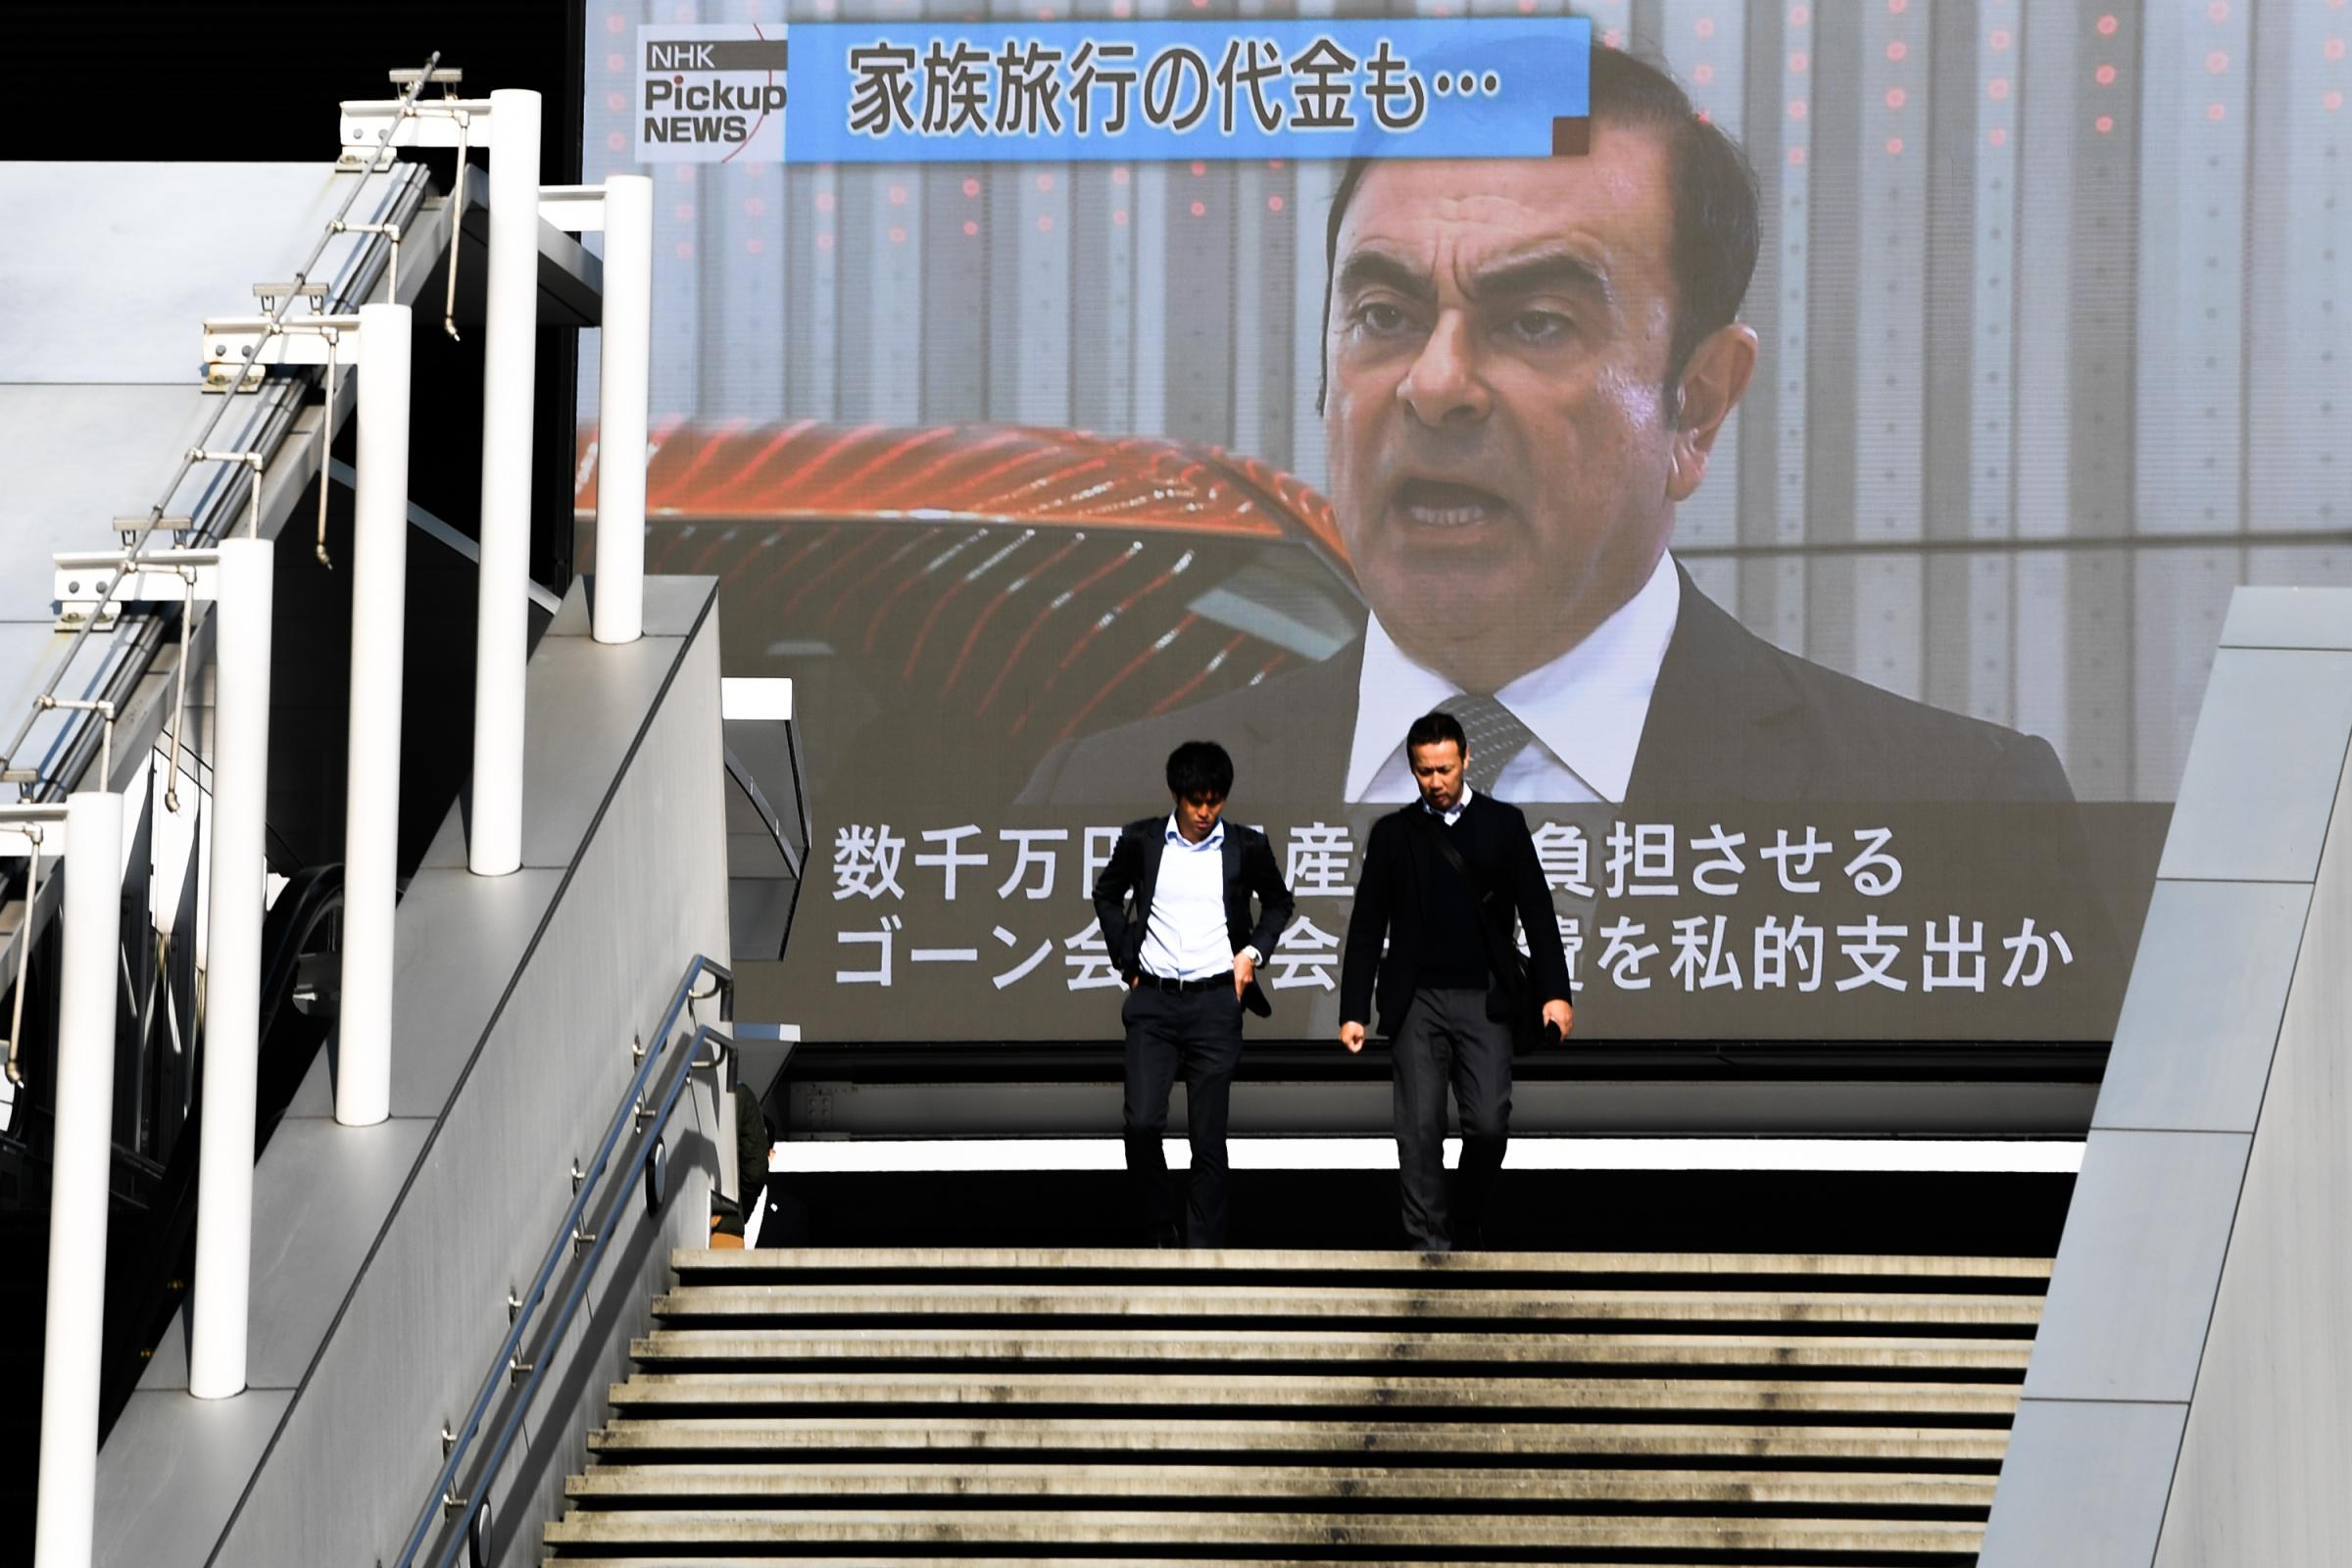 Pedestrians next to a screen showing Carlos Ghosn. Photograph: Getty